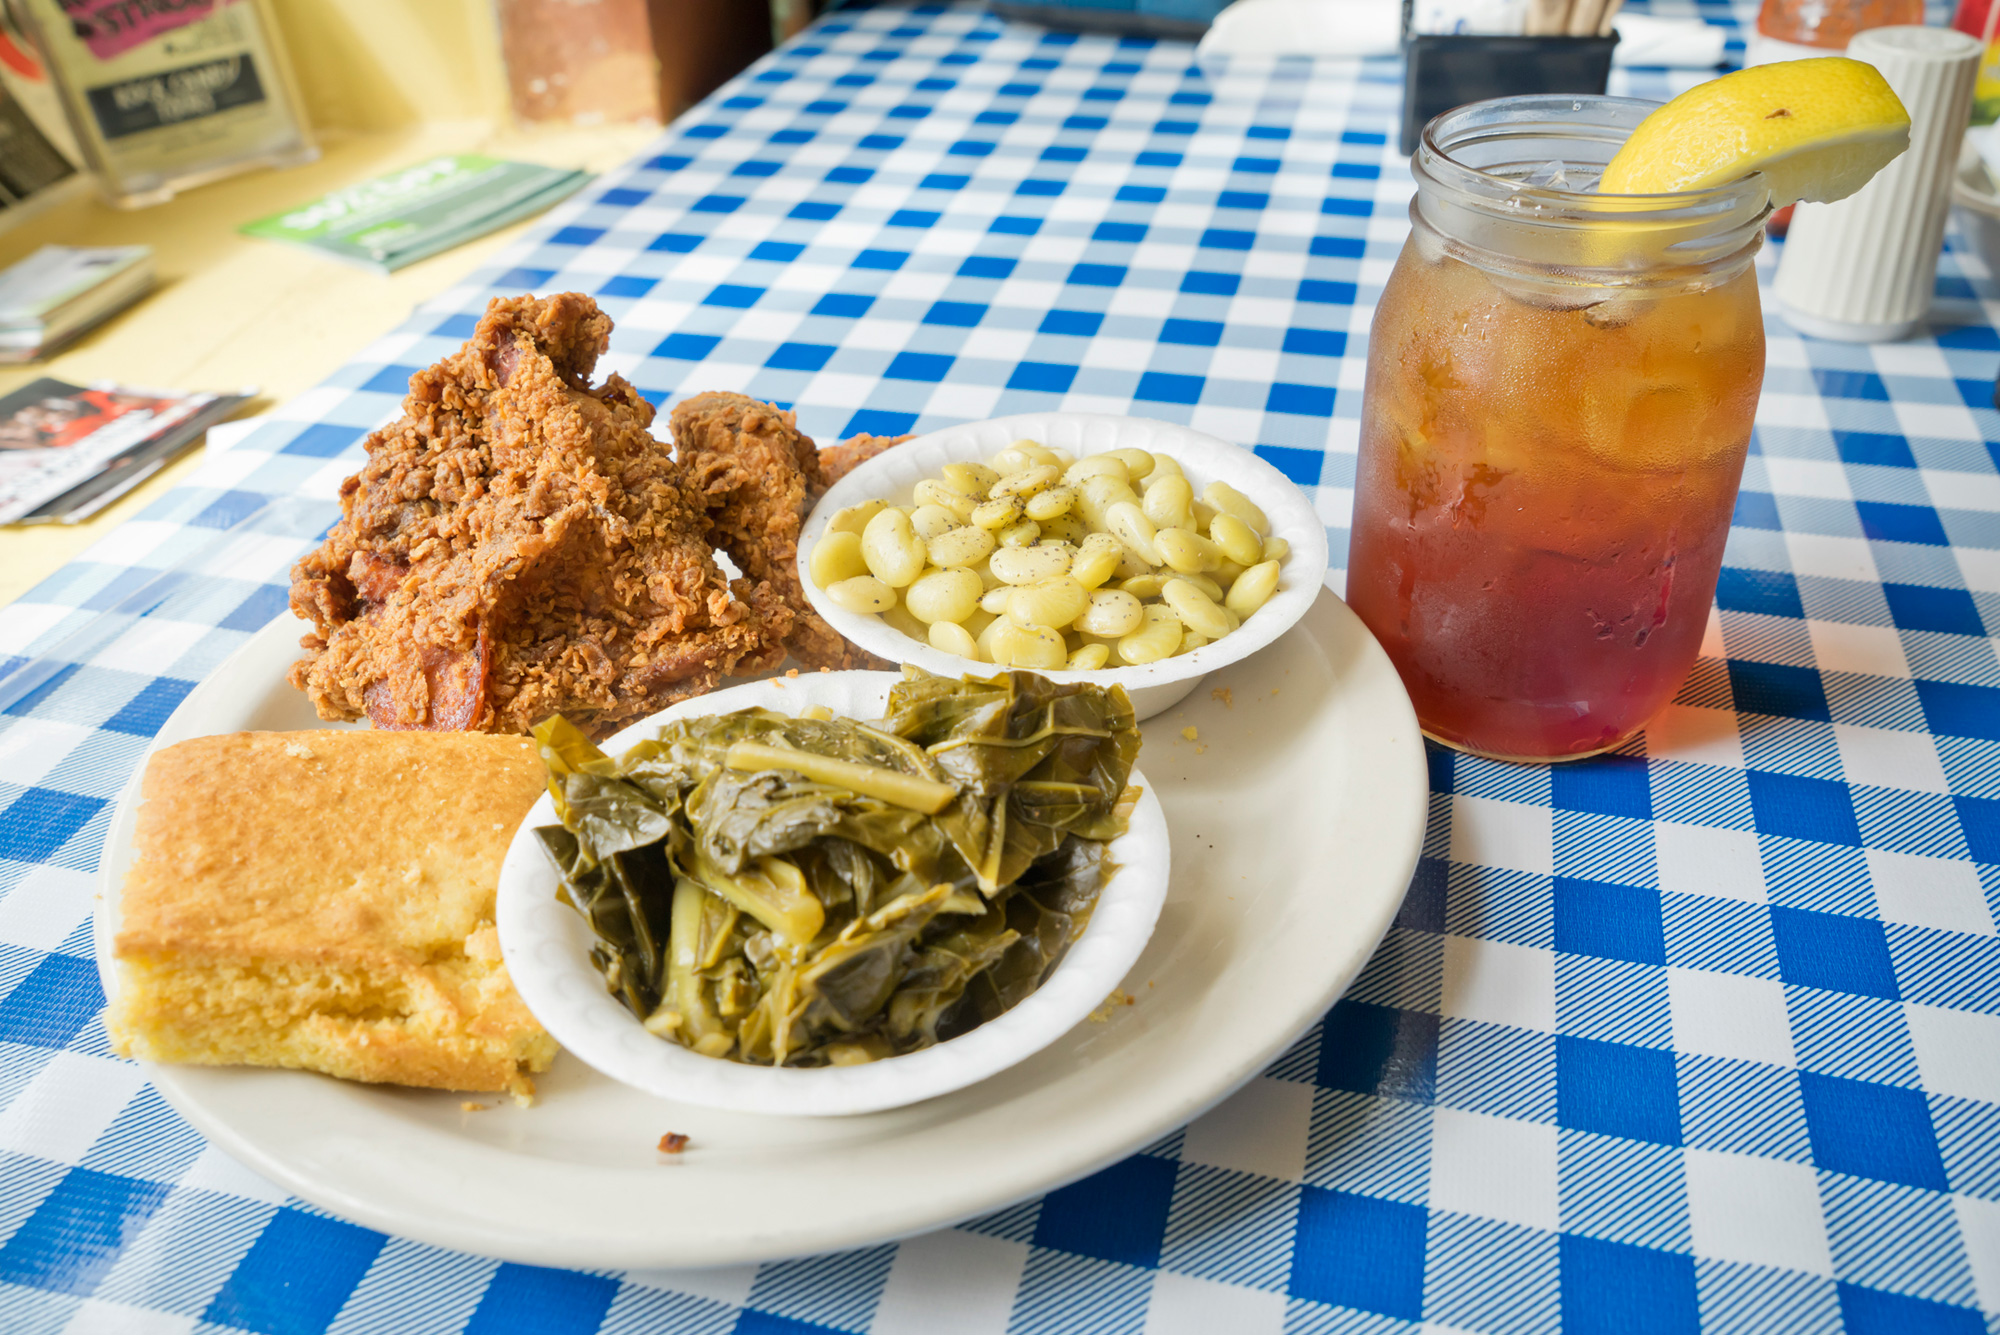 Fried chicken, side dishes and iced tea at H&H Restaurant in Macon, Georgia